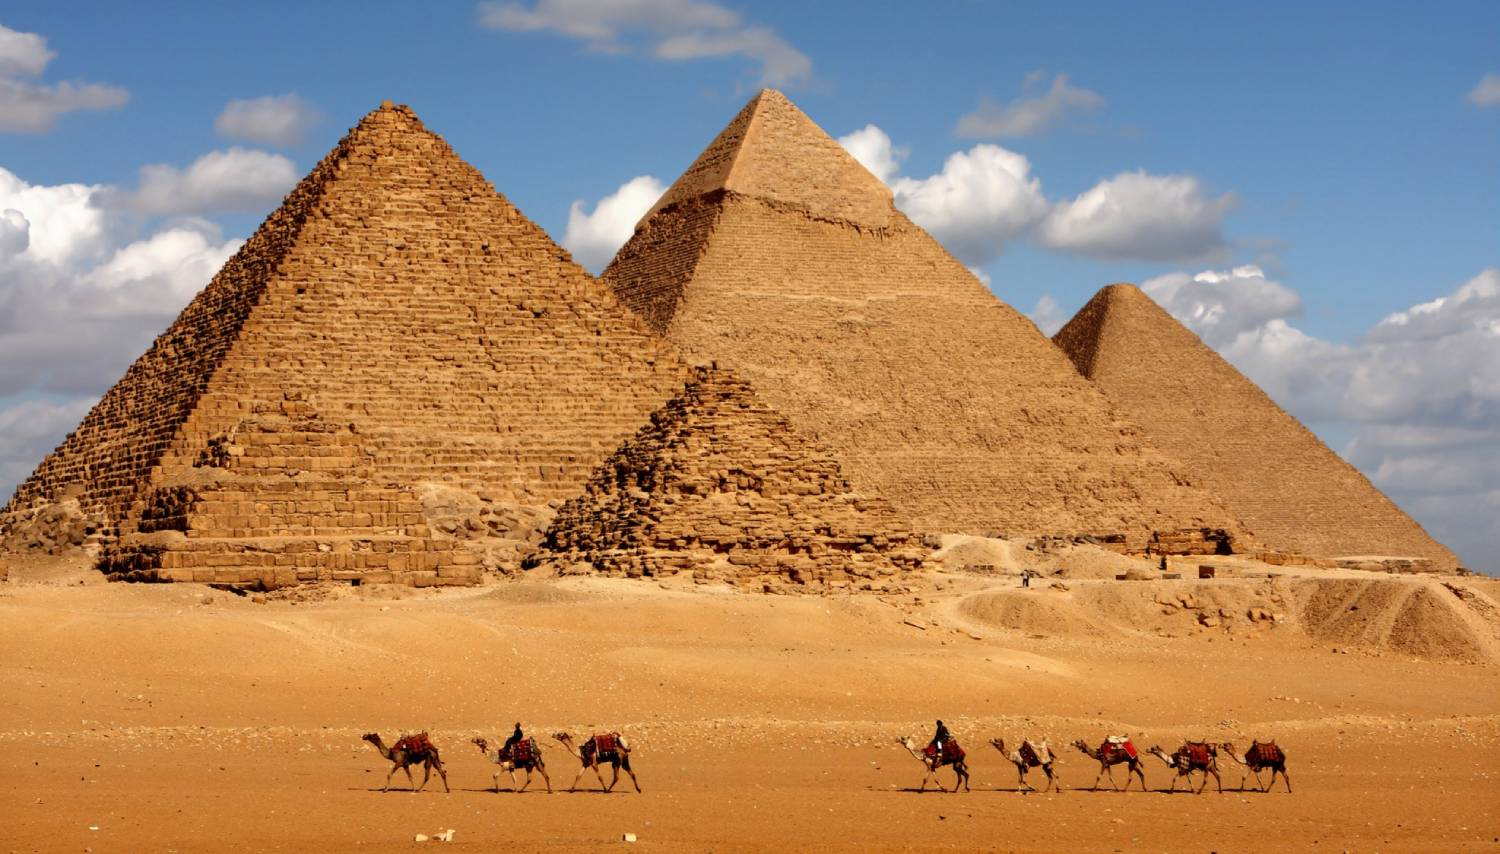 Giza Pyramids - Things To Do In Cairo